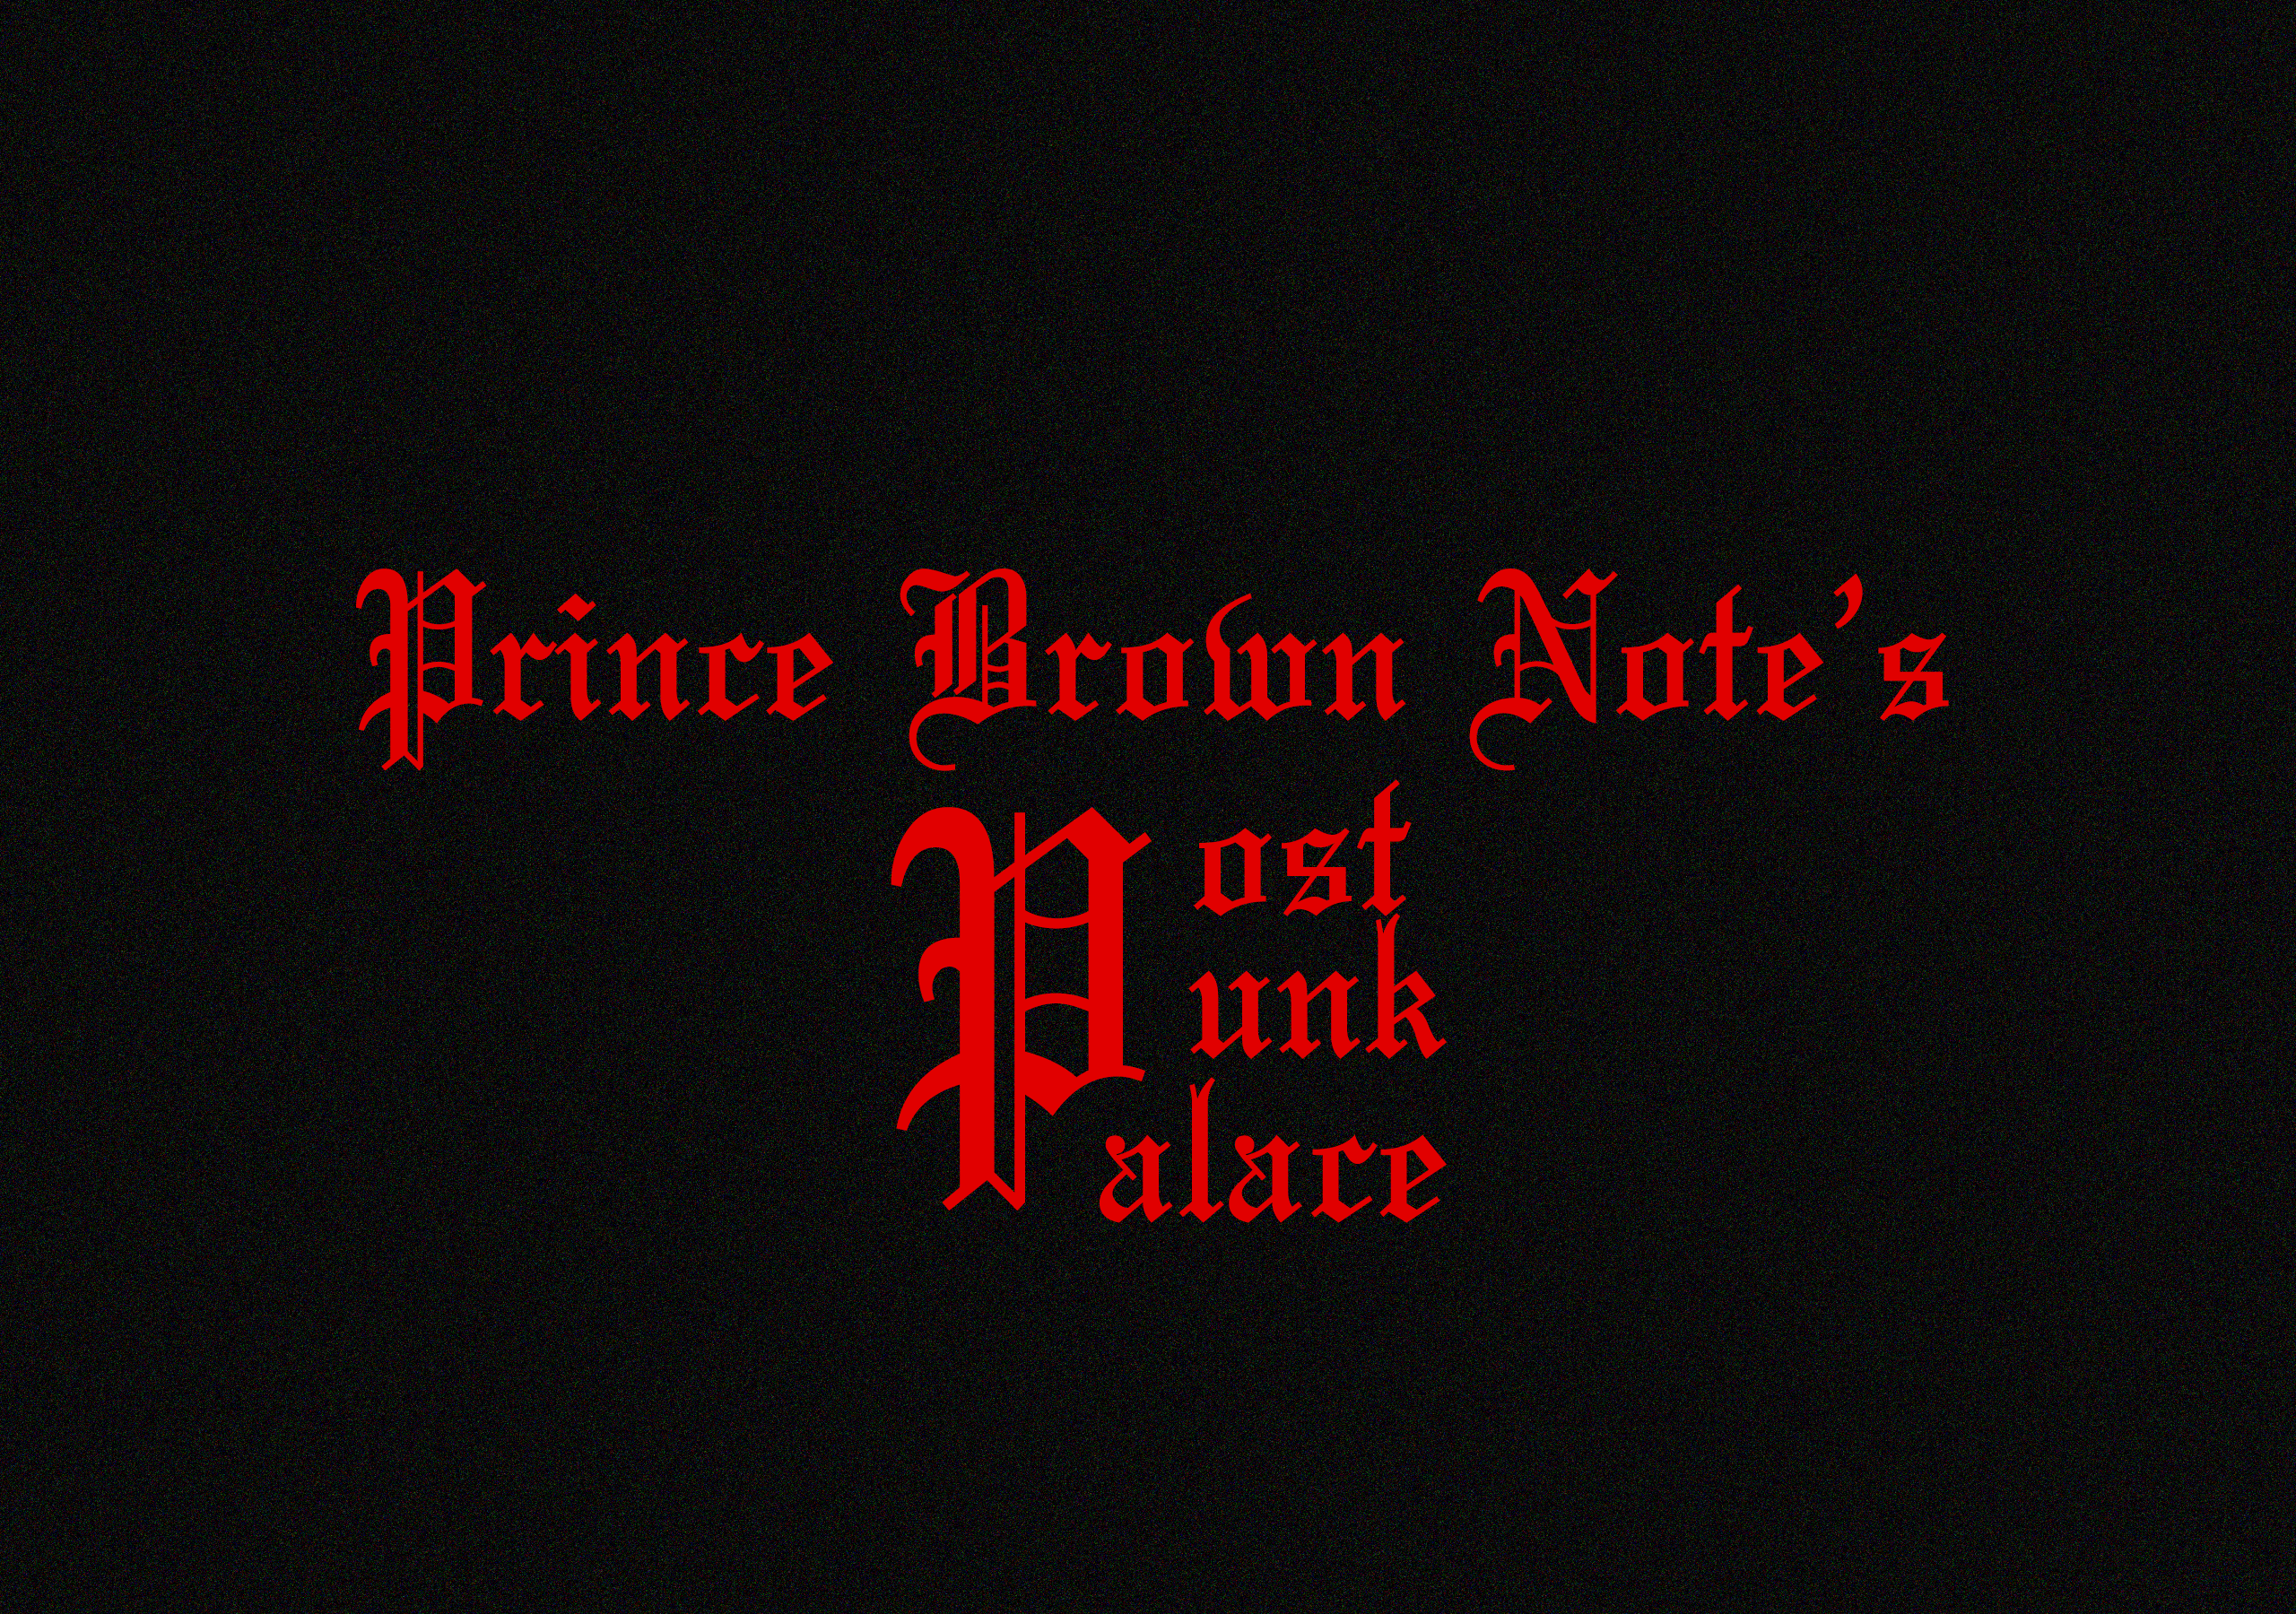 PRINCE BROWN NOTE'S POST-PUNK PALACE banner